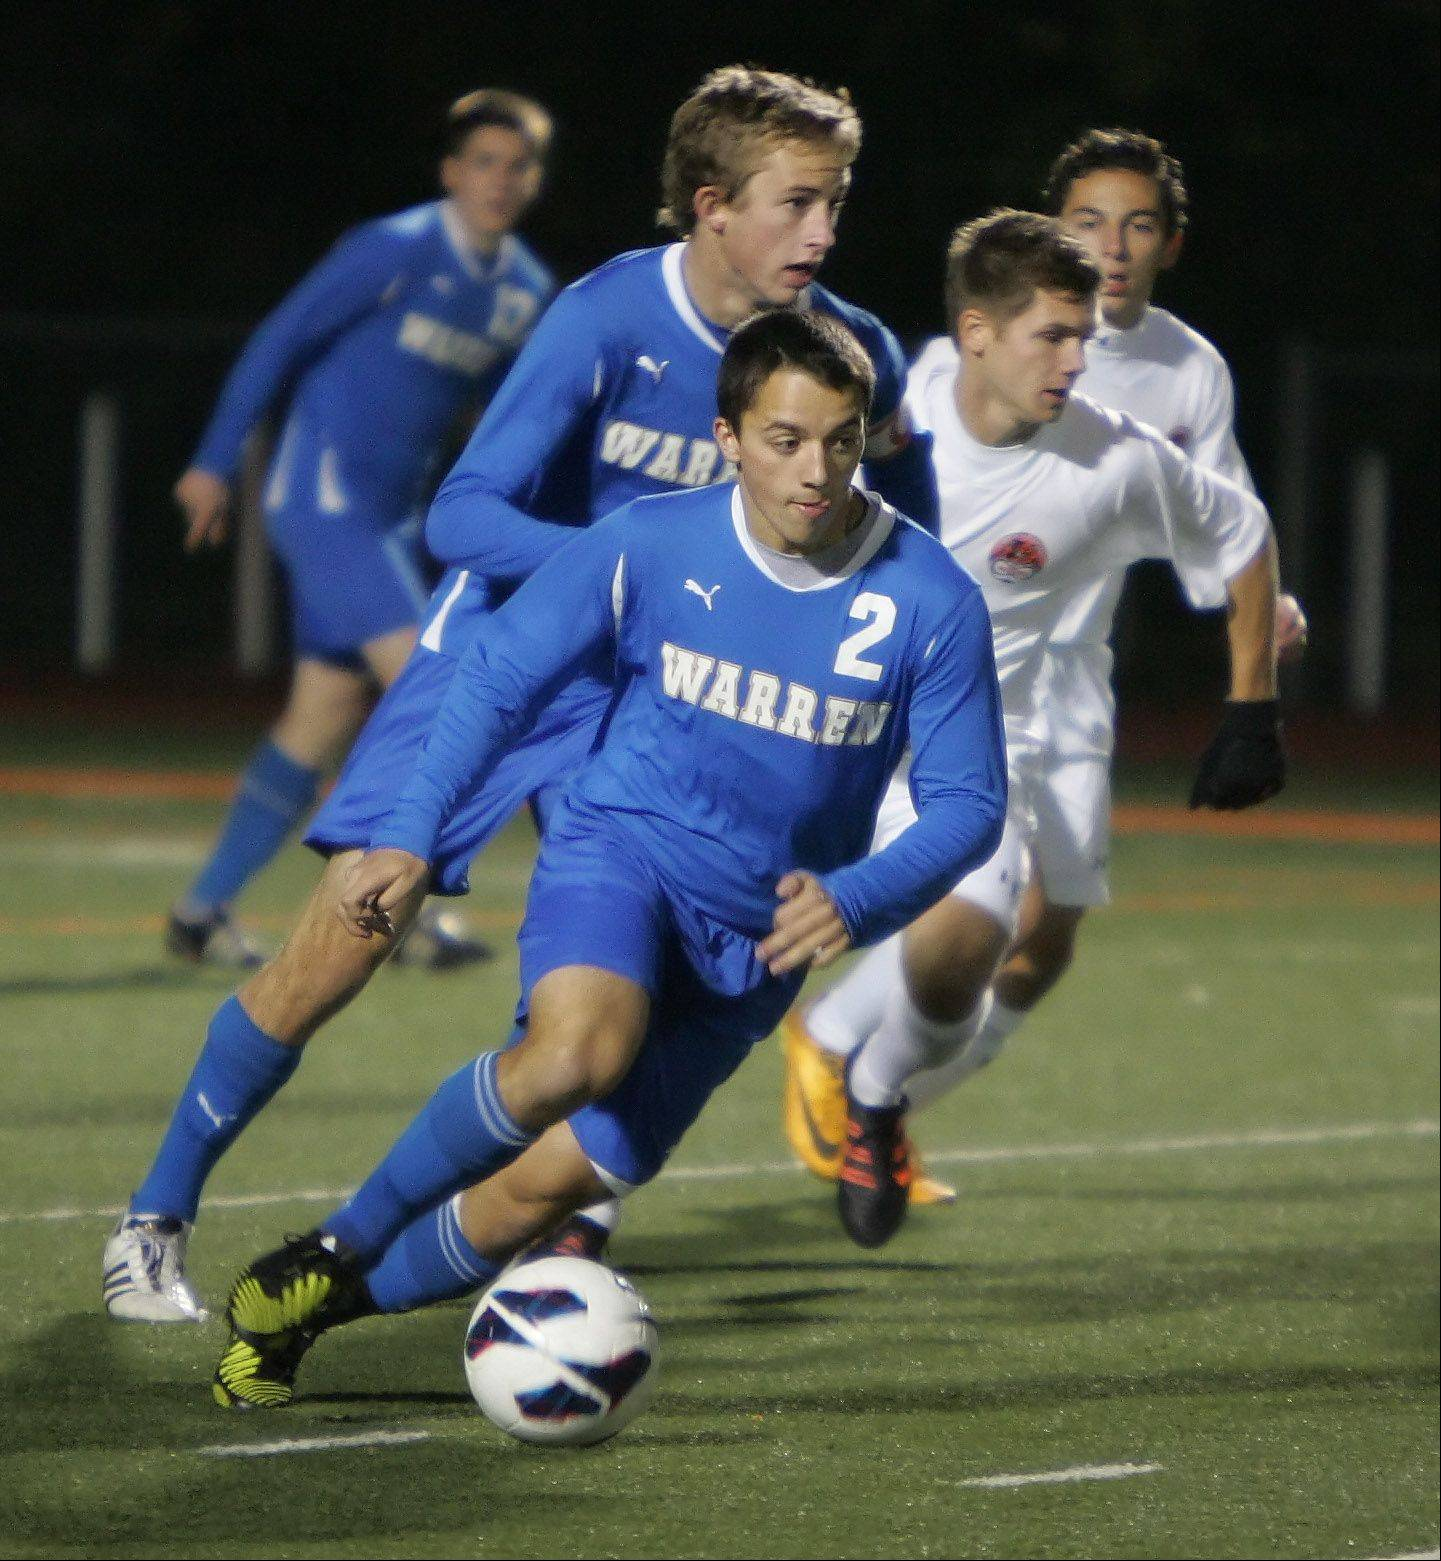 Warren forward Tony Severini takes the ball down field Thursday at Libertyville.